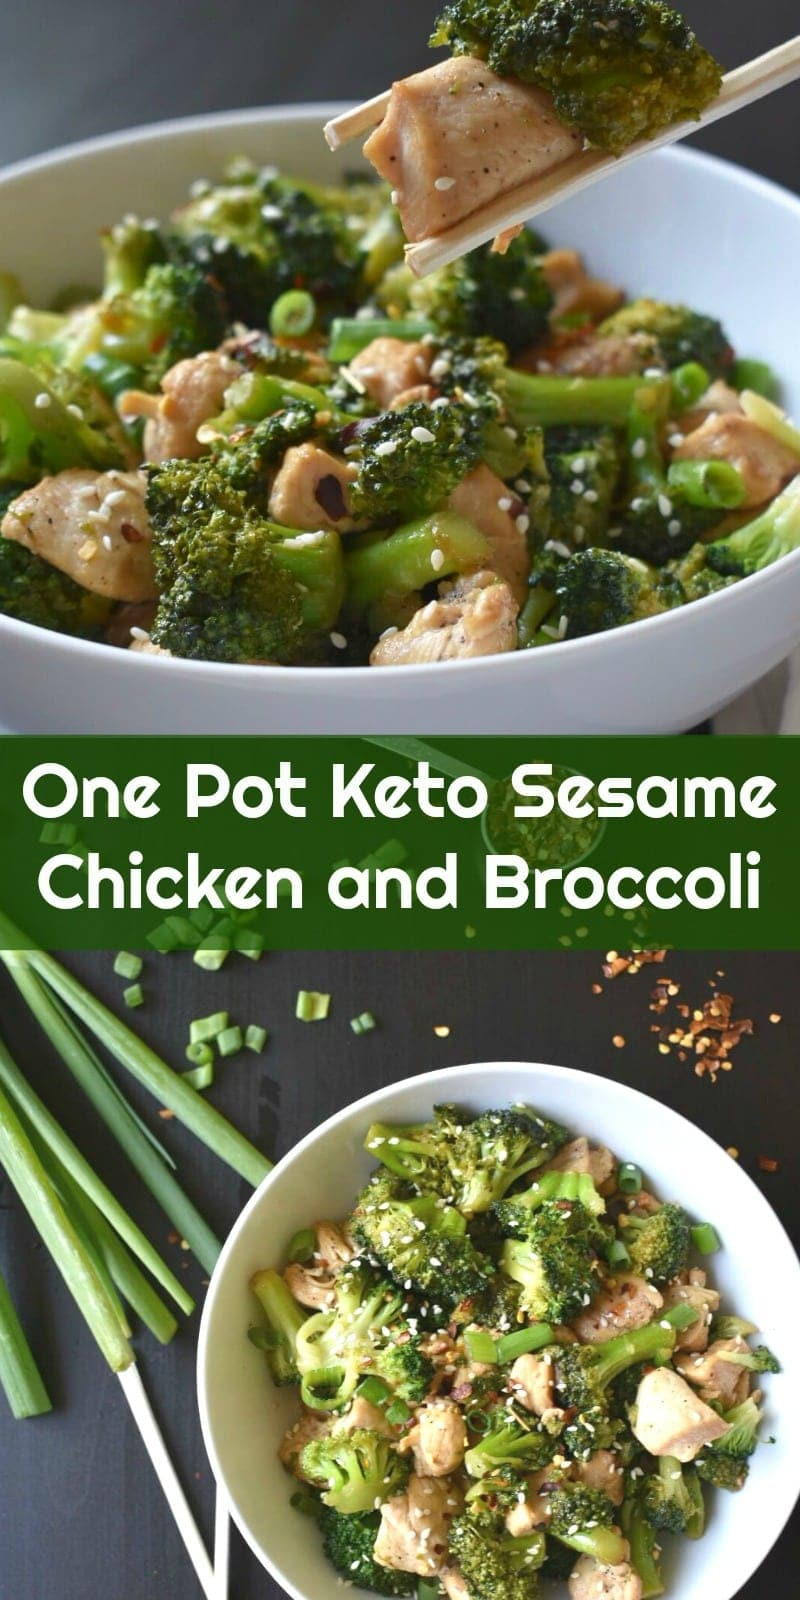 One Pot Keto Sesame Chicken and Broccoli #keto #lowcarb #ketogenic #onepotrecipes